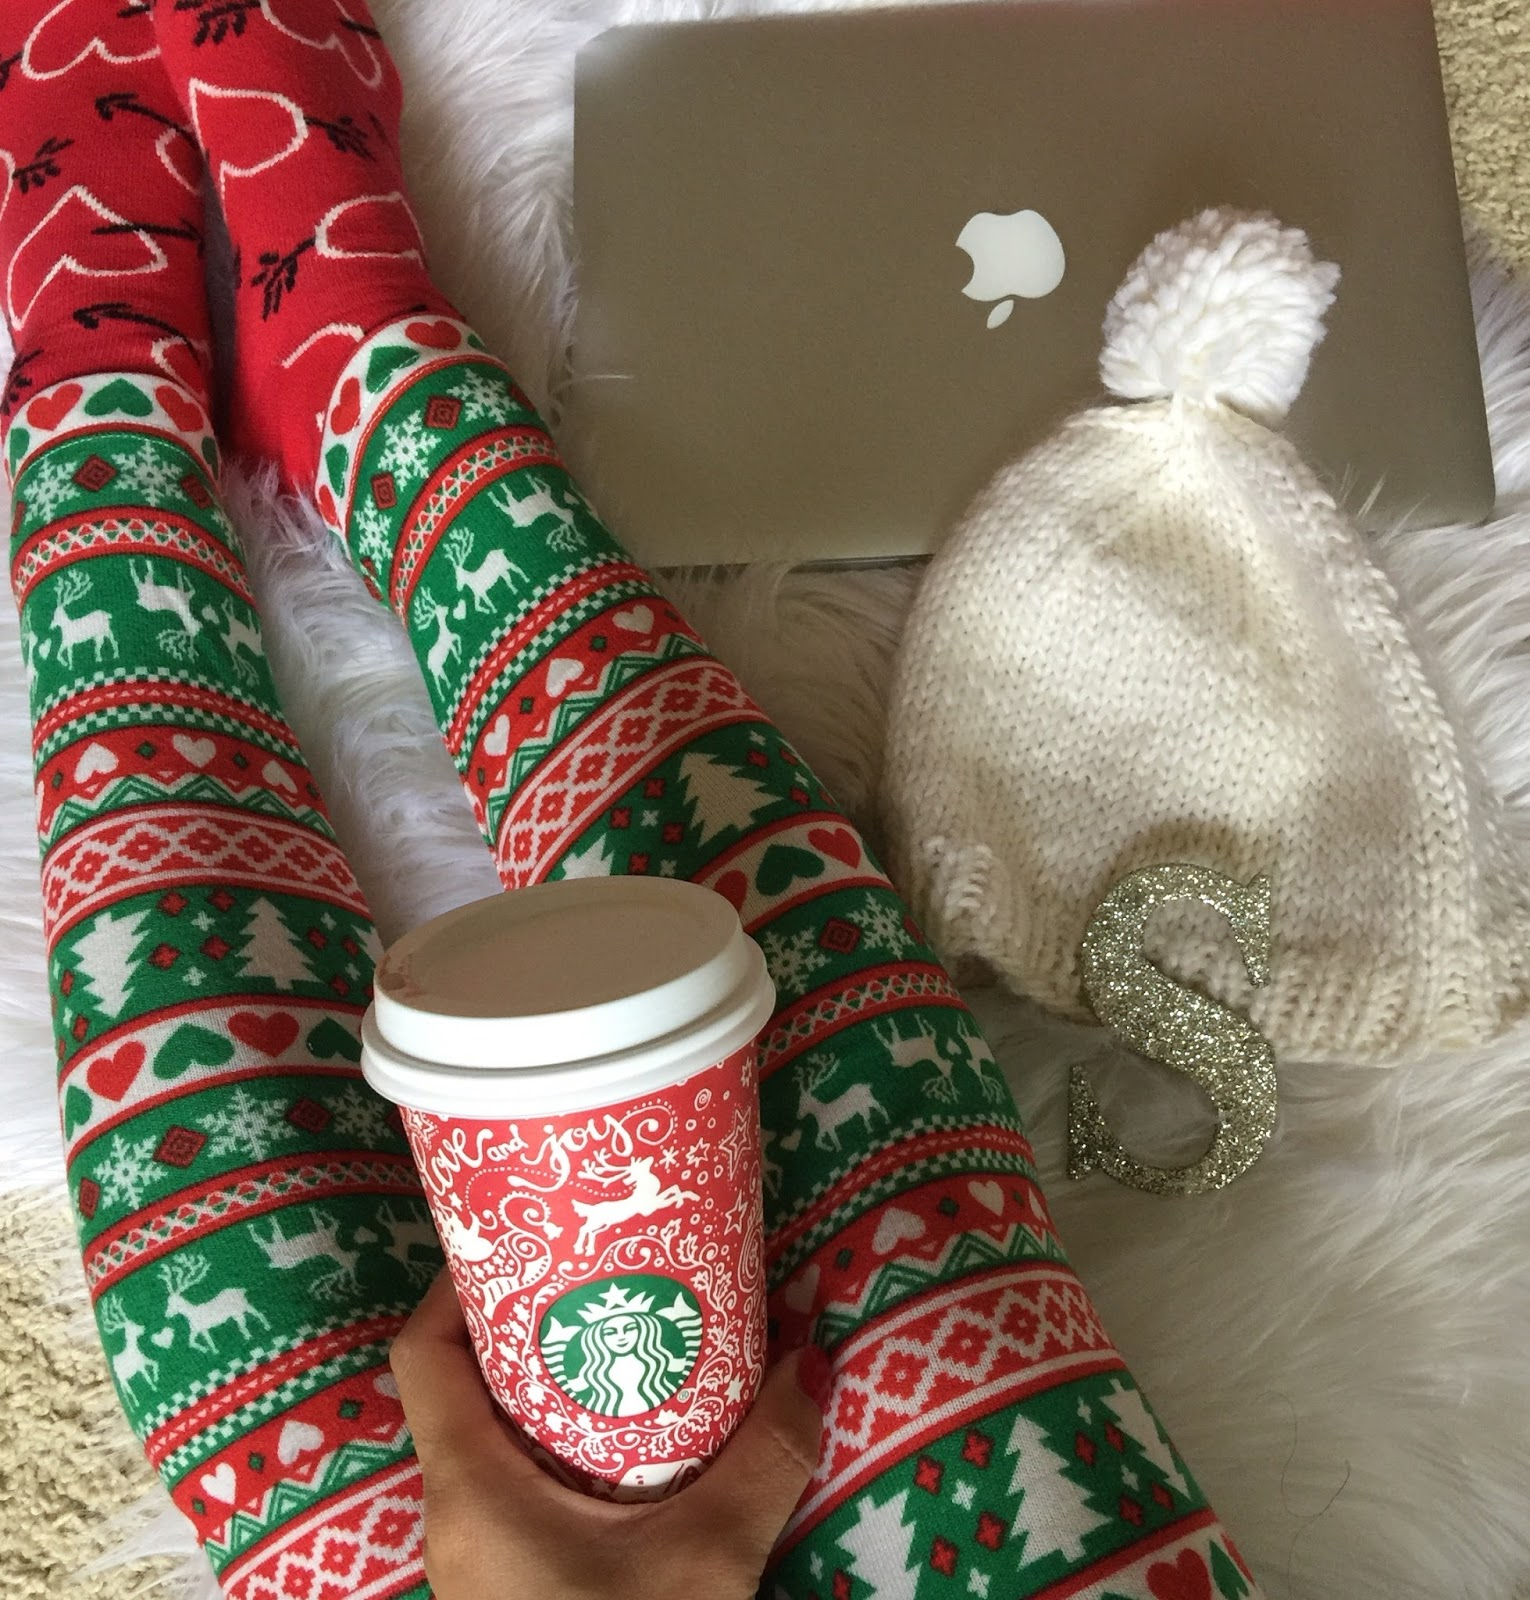 outfit details christmas leggings walmart similar here beanie bcbg comes in 7 gorgeous colorss ornament walmart similar heresocks co happy socks - Walmart Christmas Socks